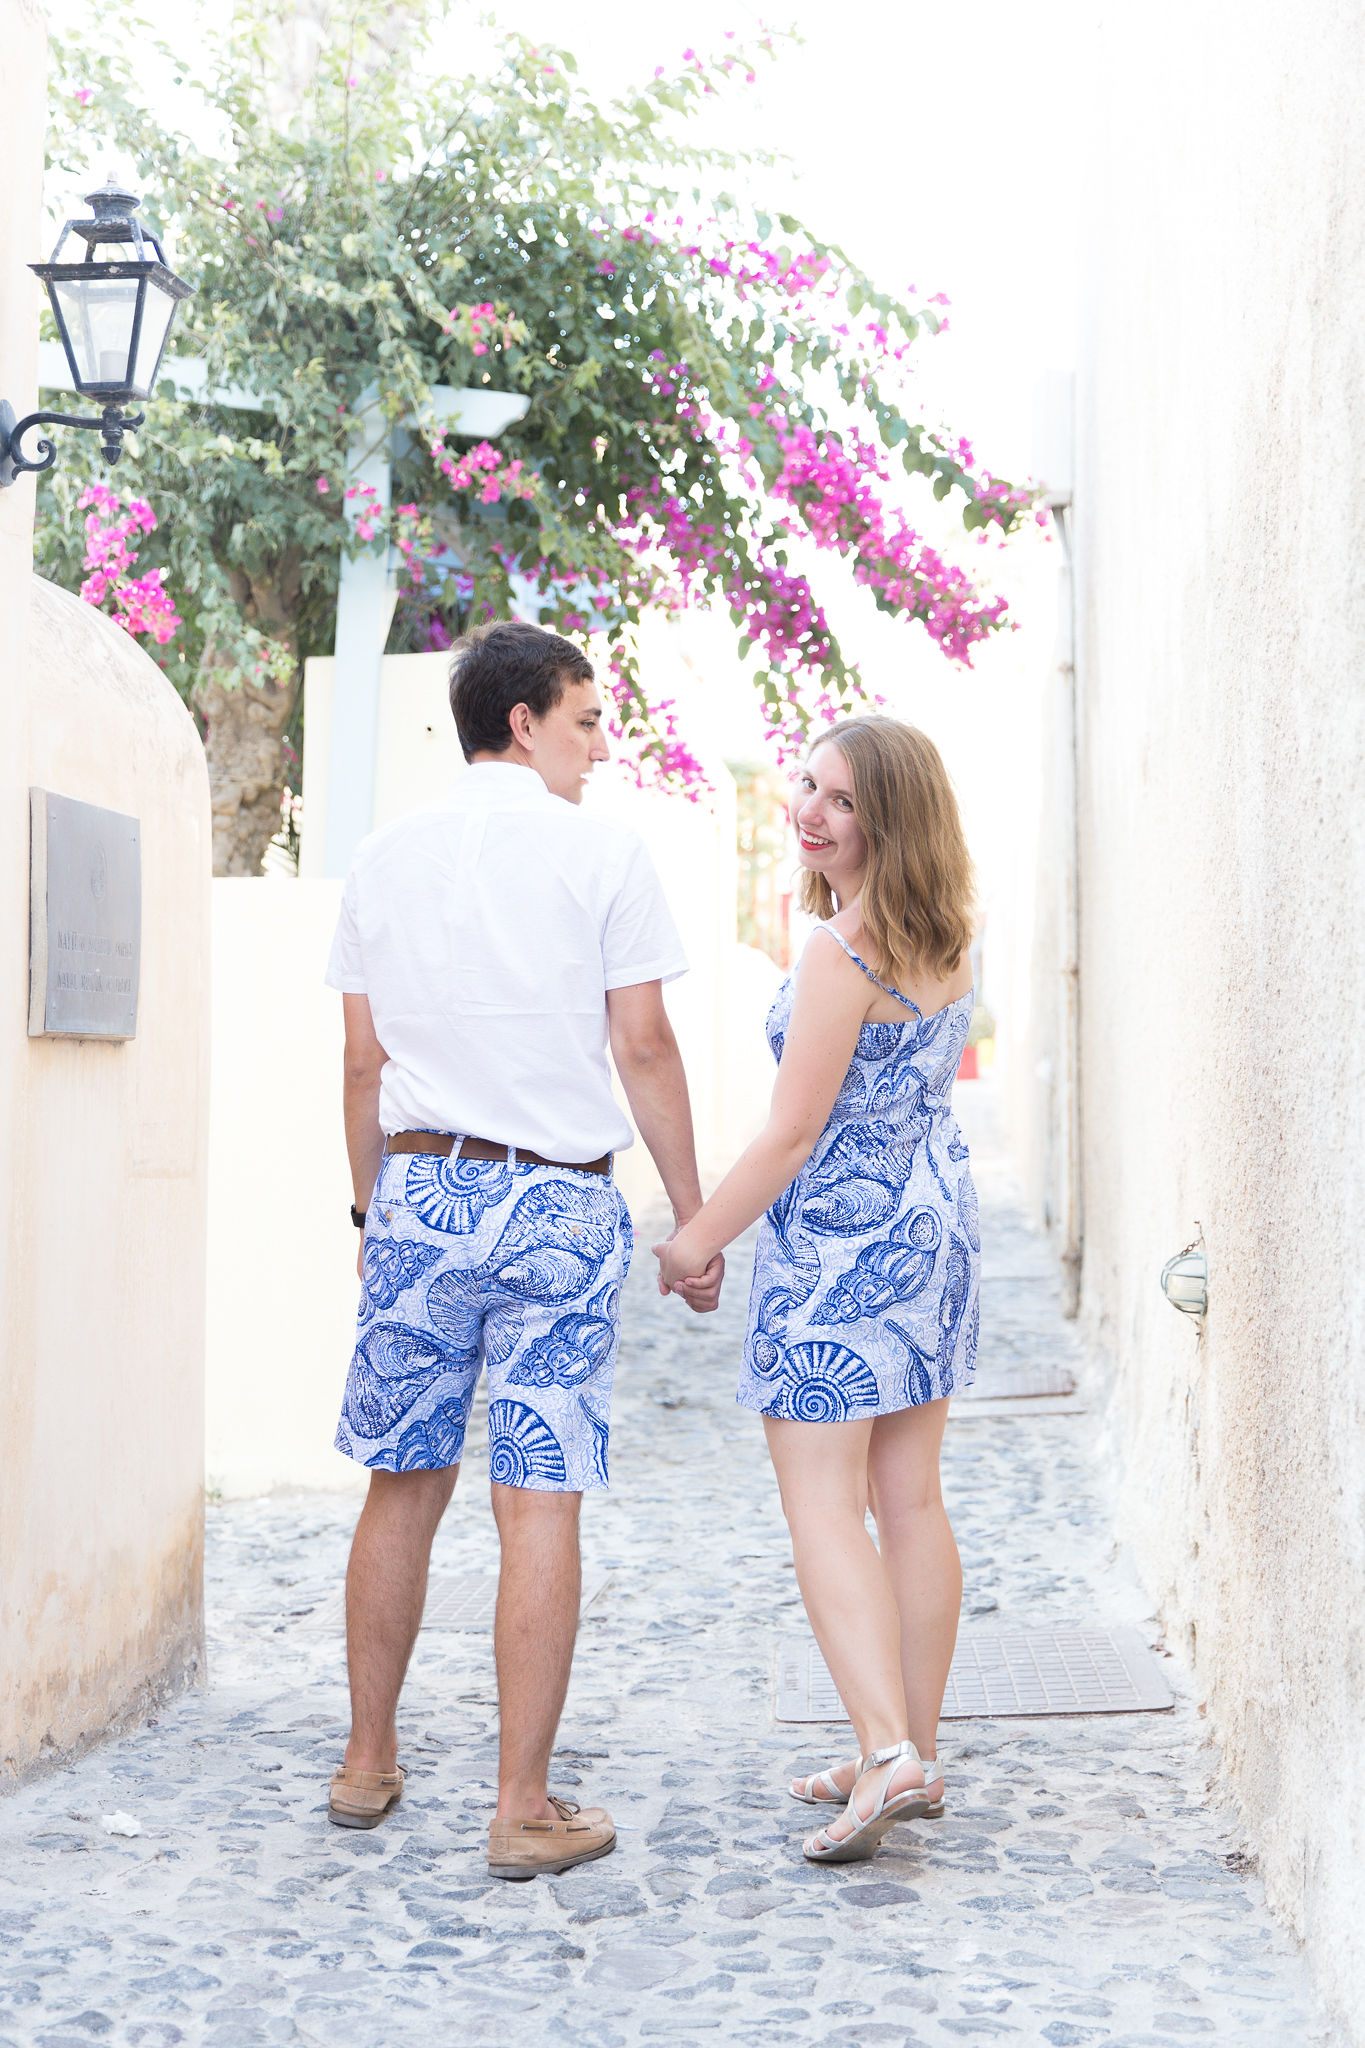 Greece Honeymoon Skyler Anne Phorography